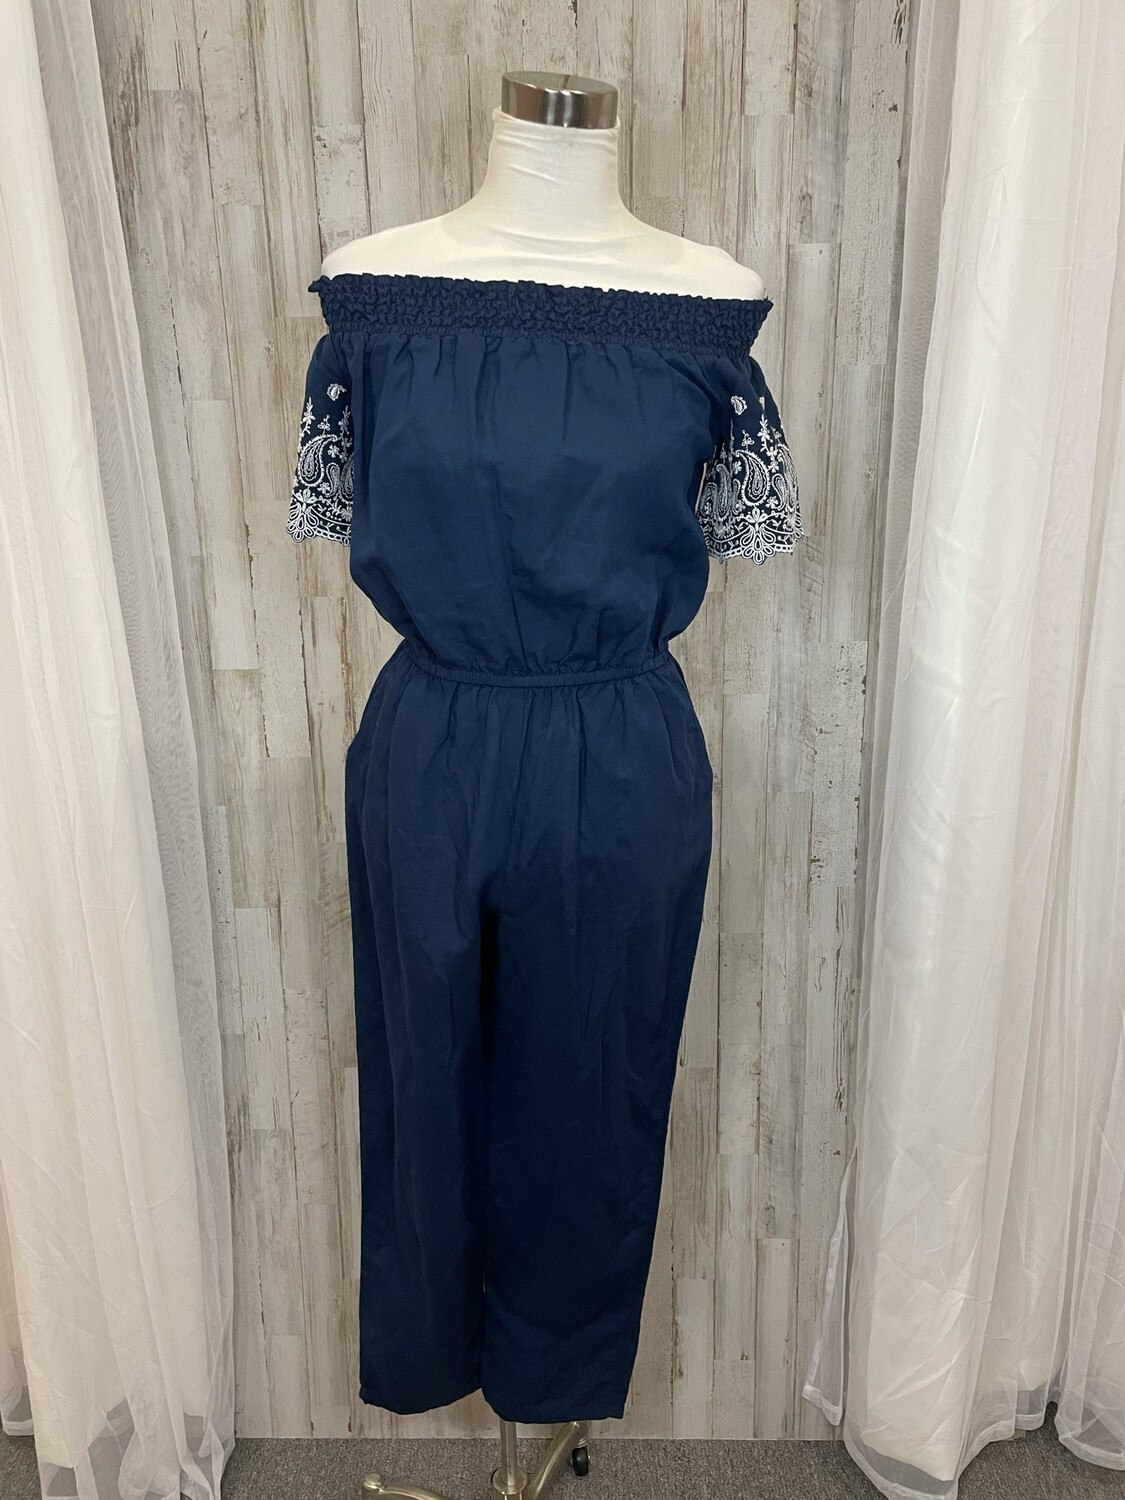 Abercrombie & Fitch Blue Jumpsuit w/ Embroidered Sleeves - S